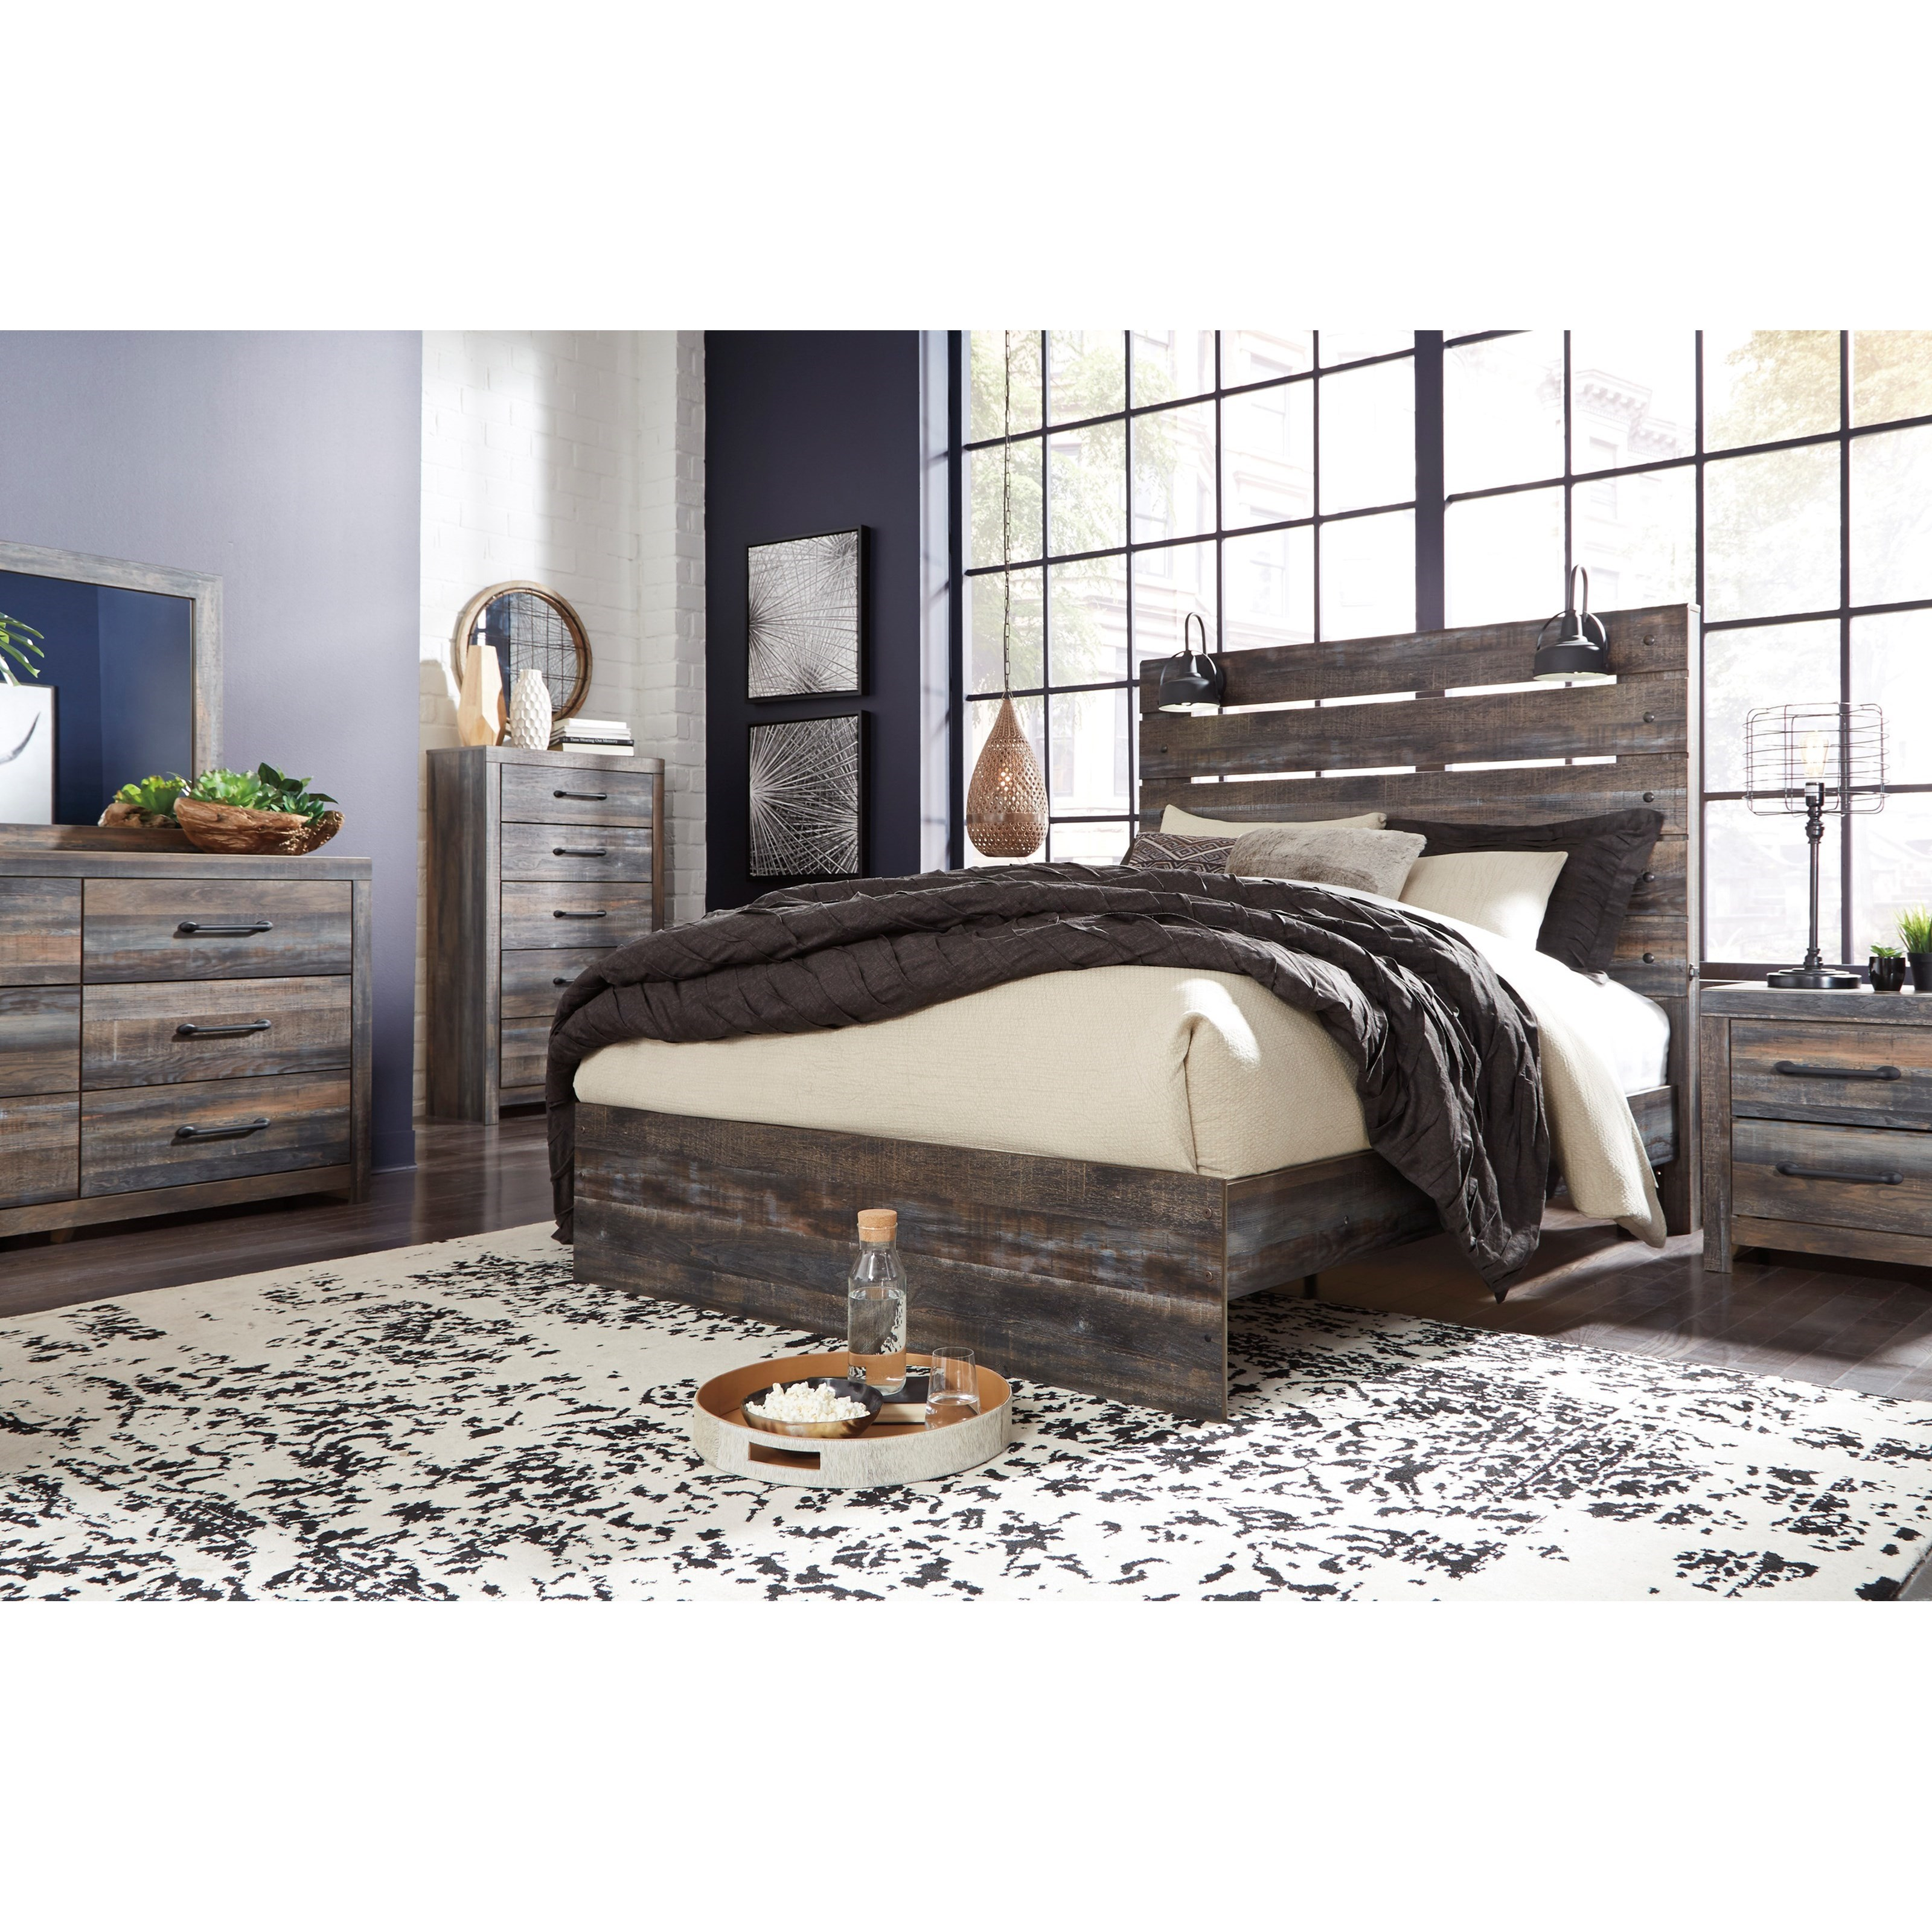 Dalton 5 Piece Queen Bedroom Group by Signature at Walker's Furniture